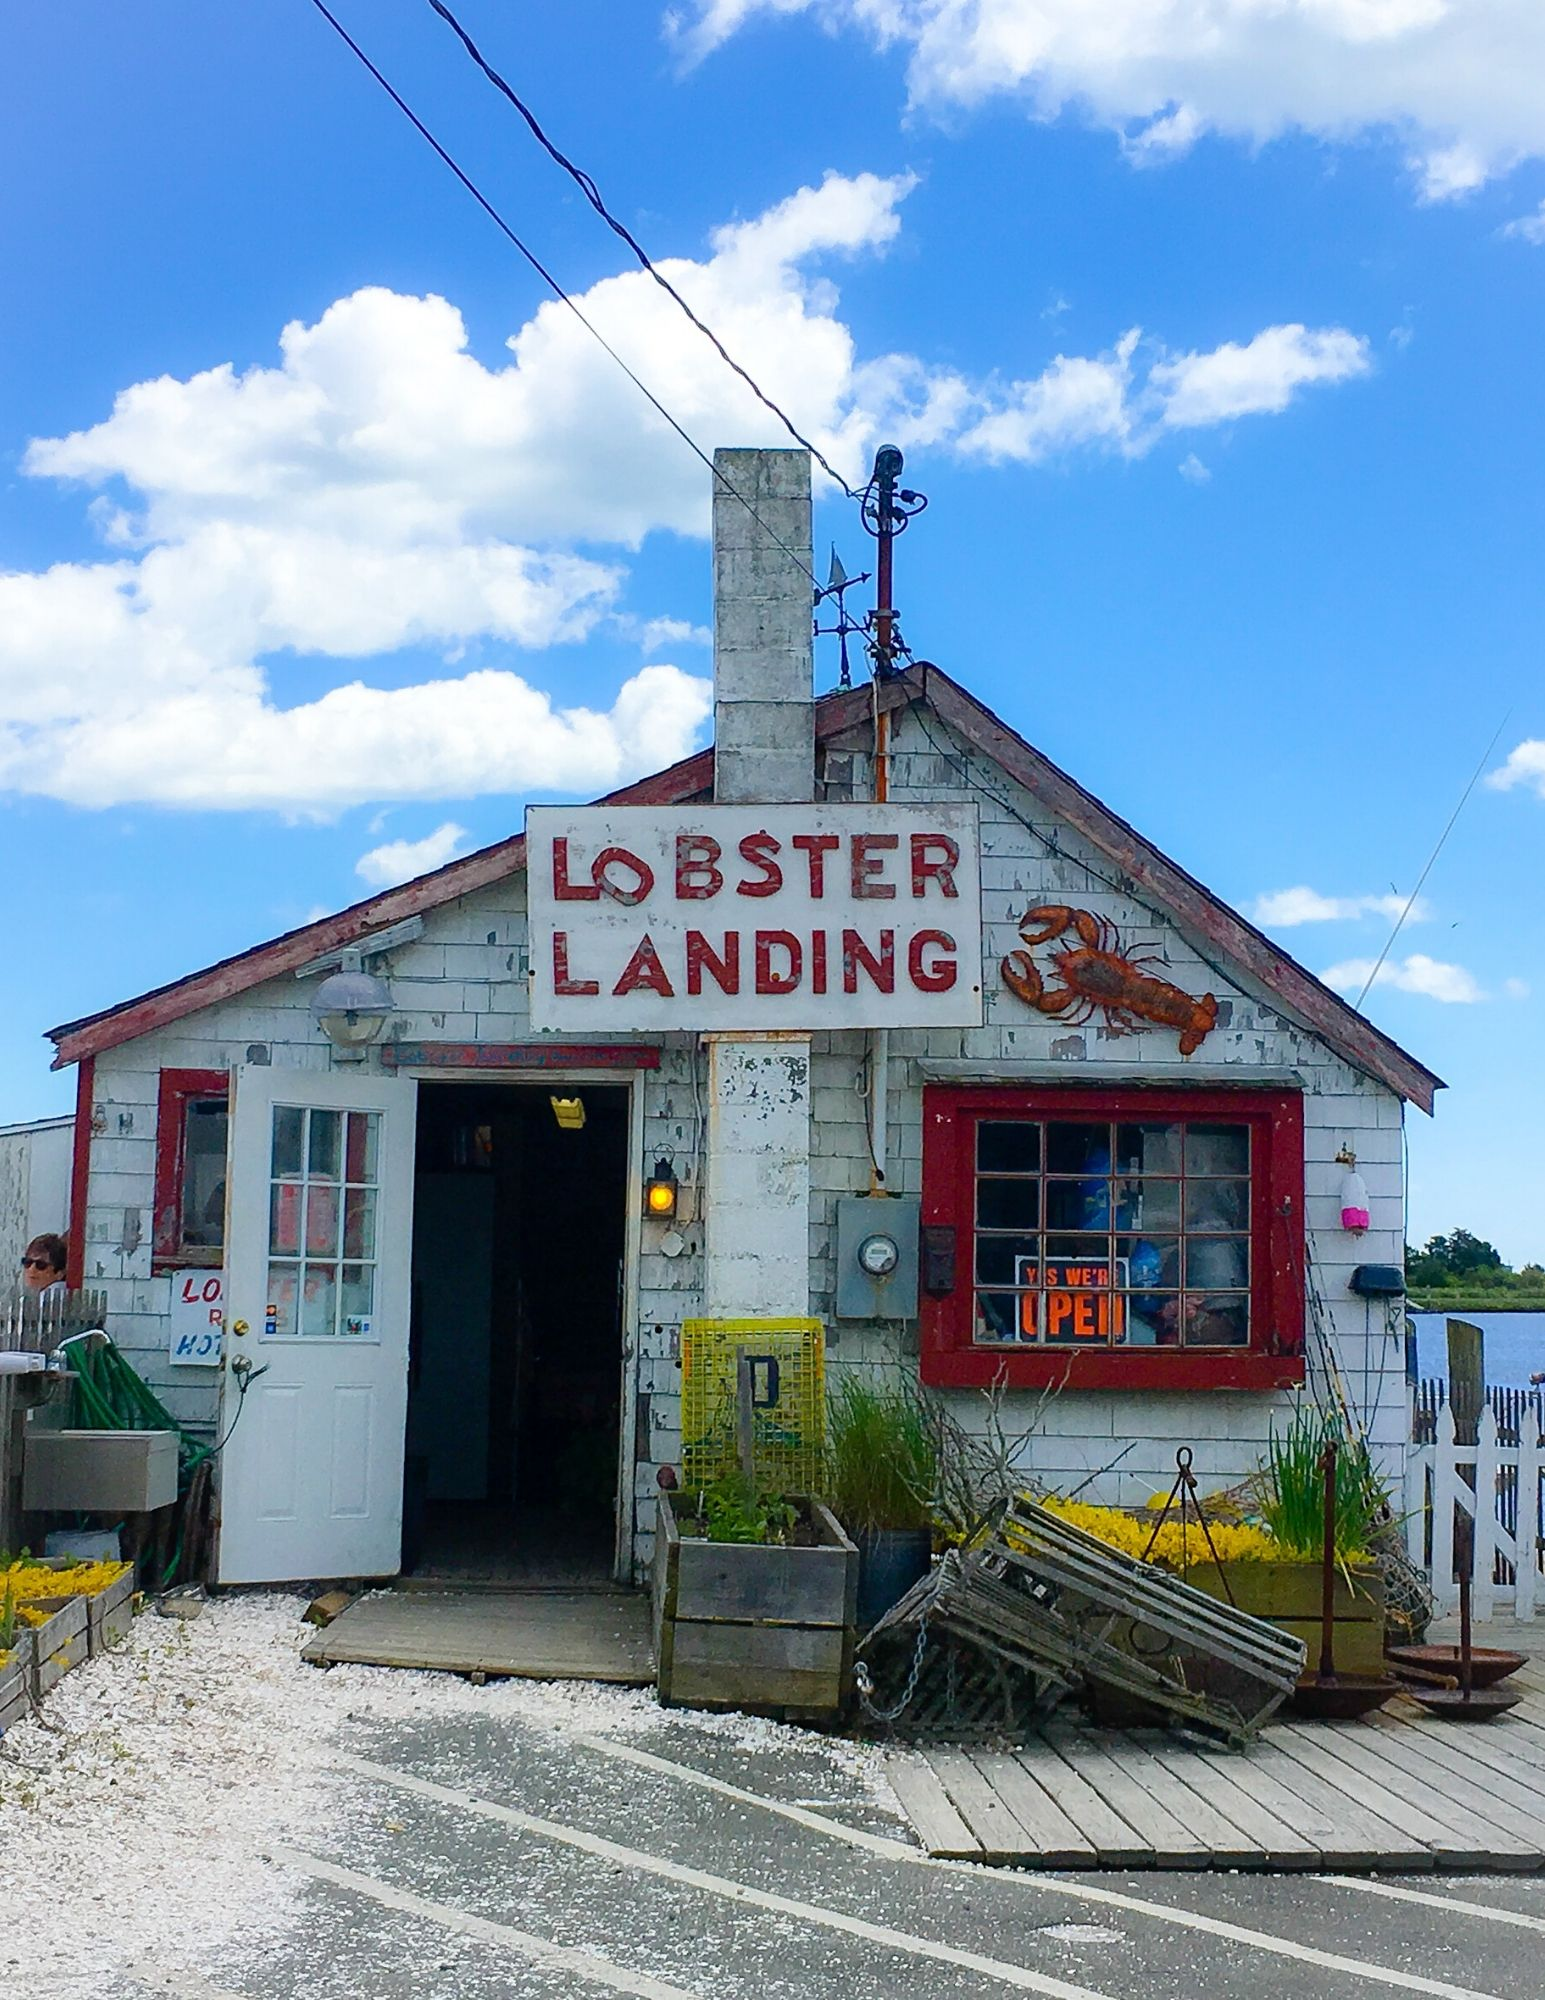 Grab a lobster roll from our favorite CT Shack Lobster Landing in Clinton, CT